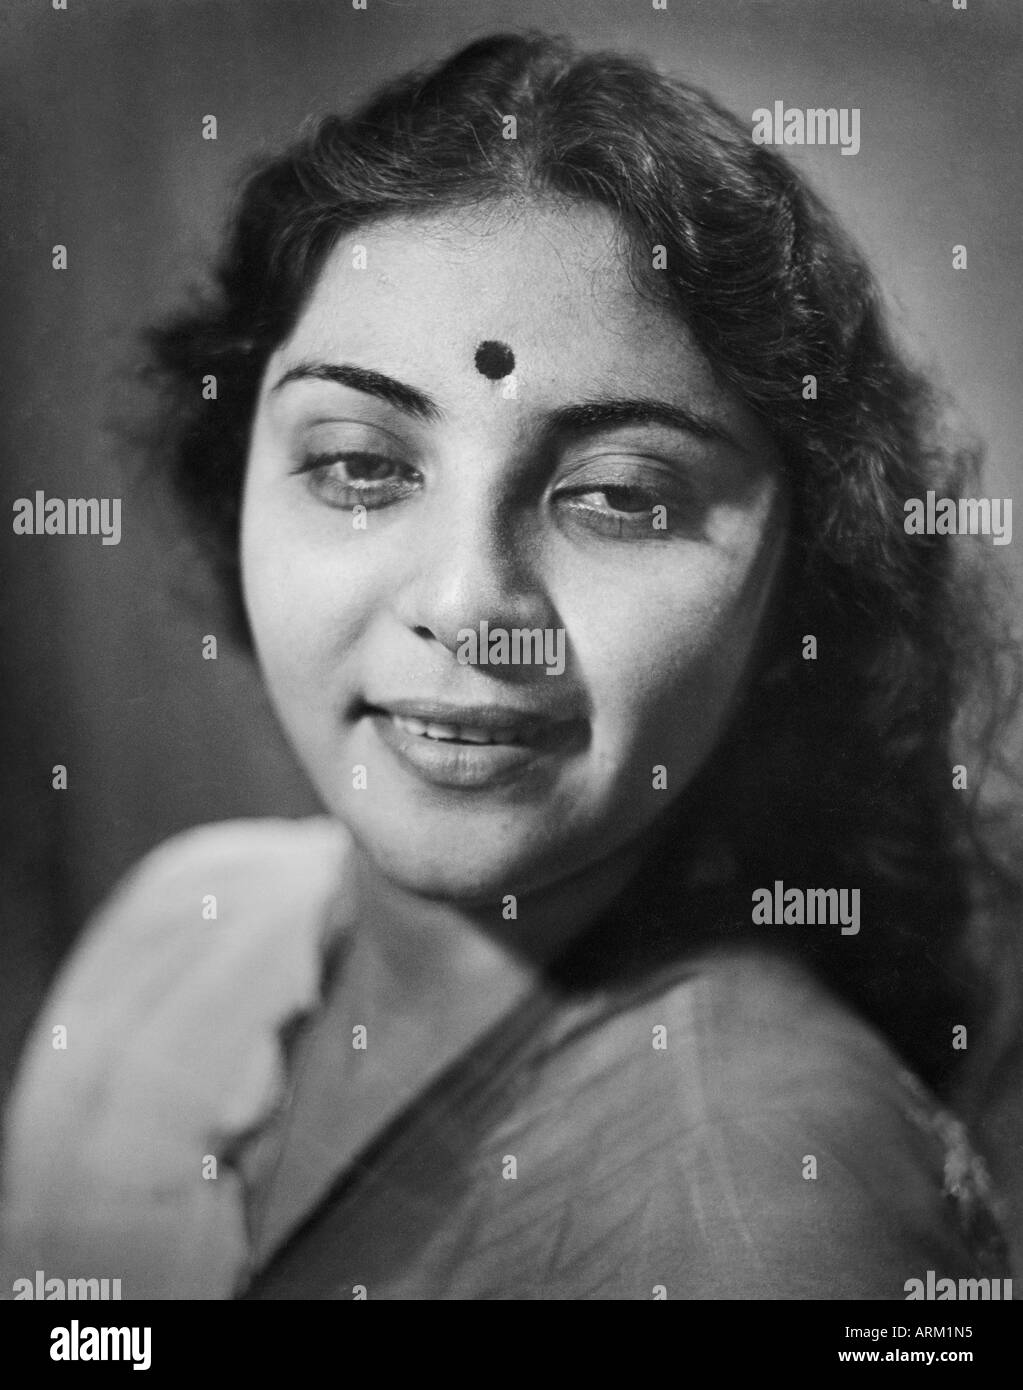 VRB101418 Indian woman Kamla Kotnis in saree and bindi on forehead India 1940s - Stock Image